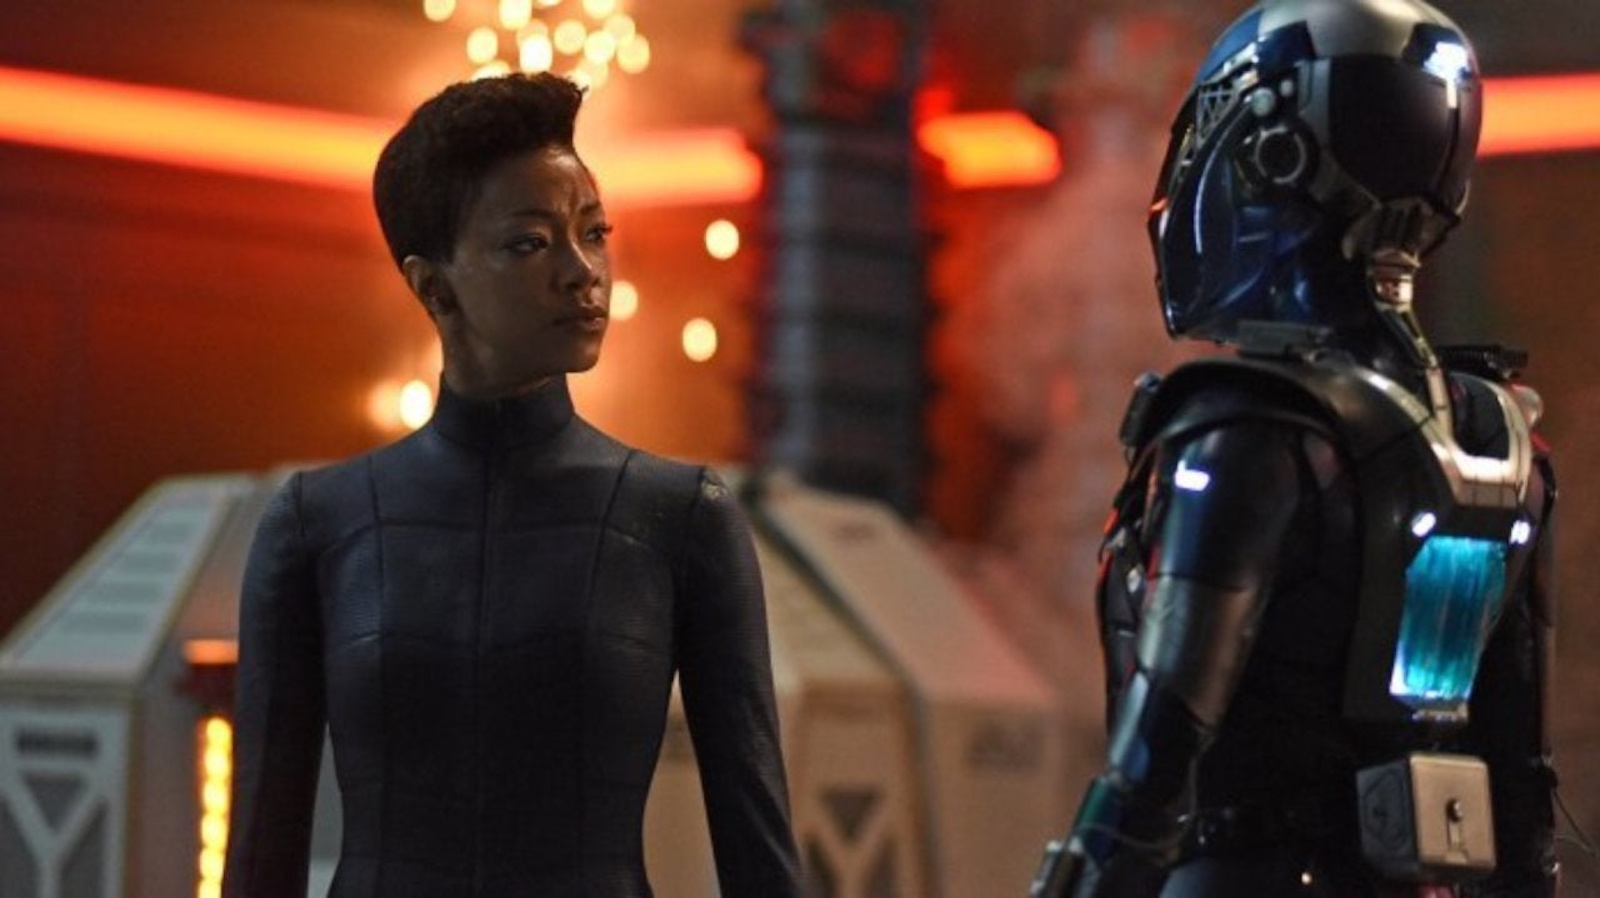 As we learn more of what to expect from 'Star Trek: Discovery' season 3, we're quickly realizing how much the new season sounds like classic Trek.